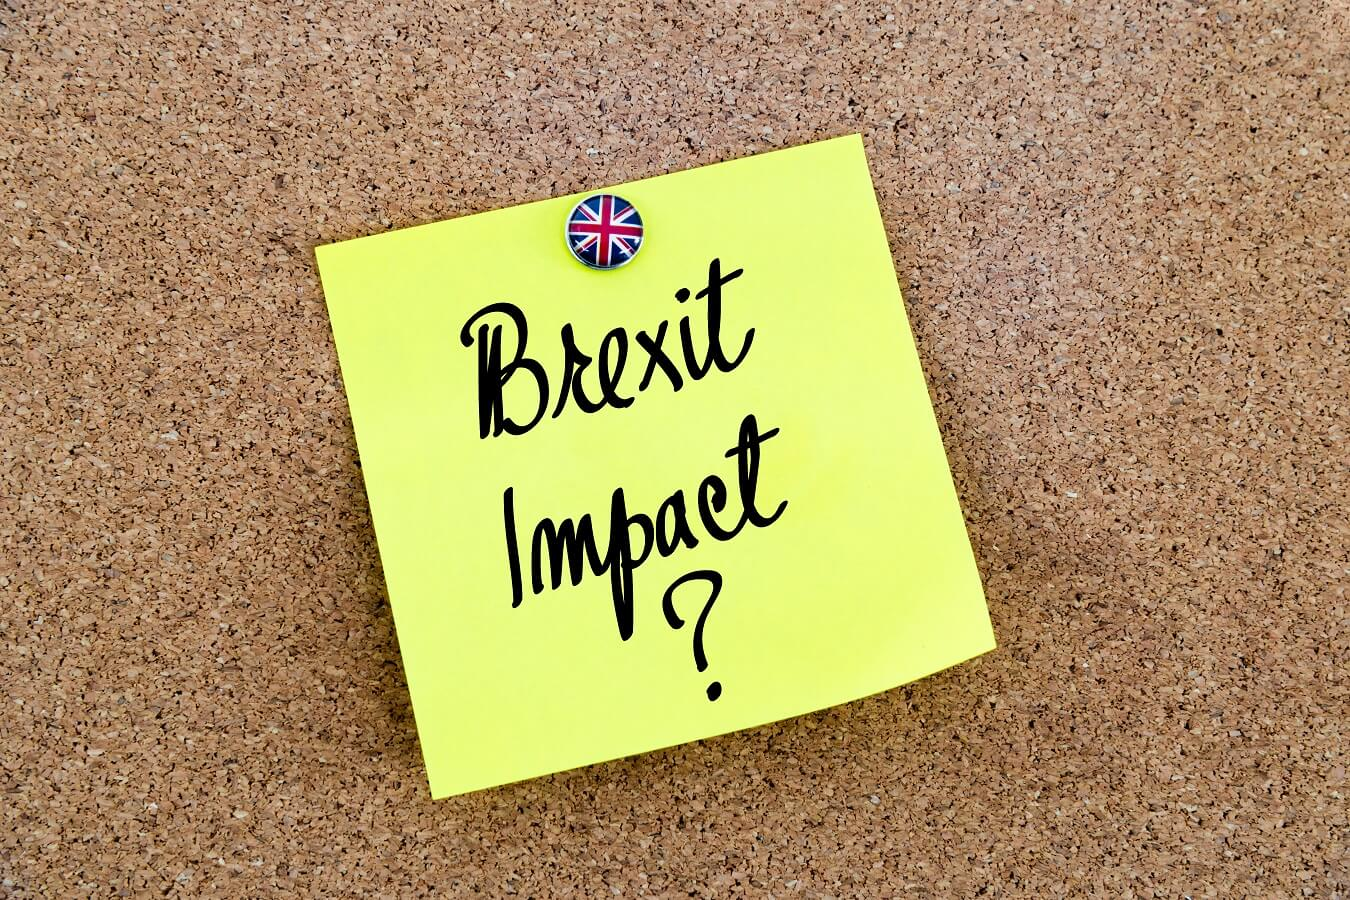 What impact will Brexit have on the pound?